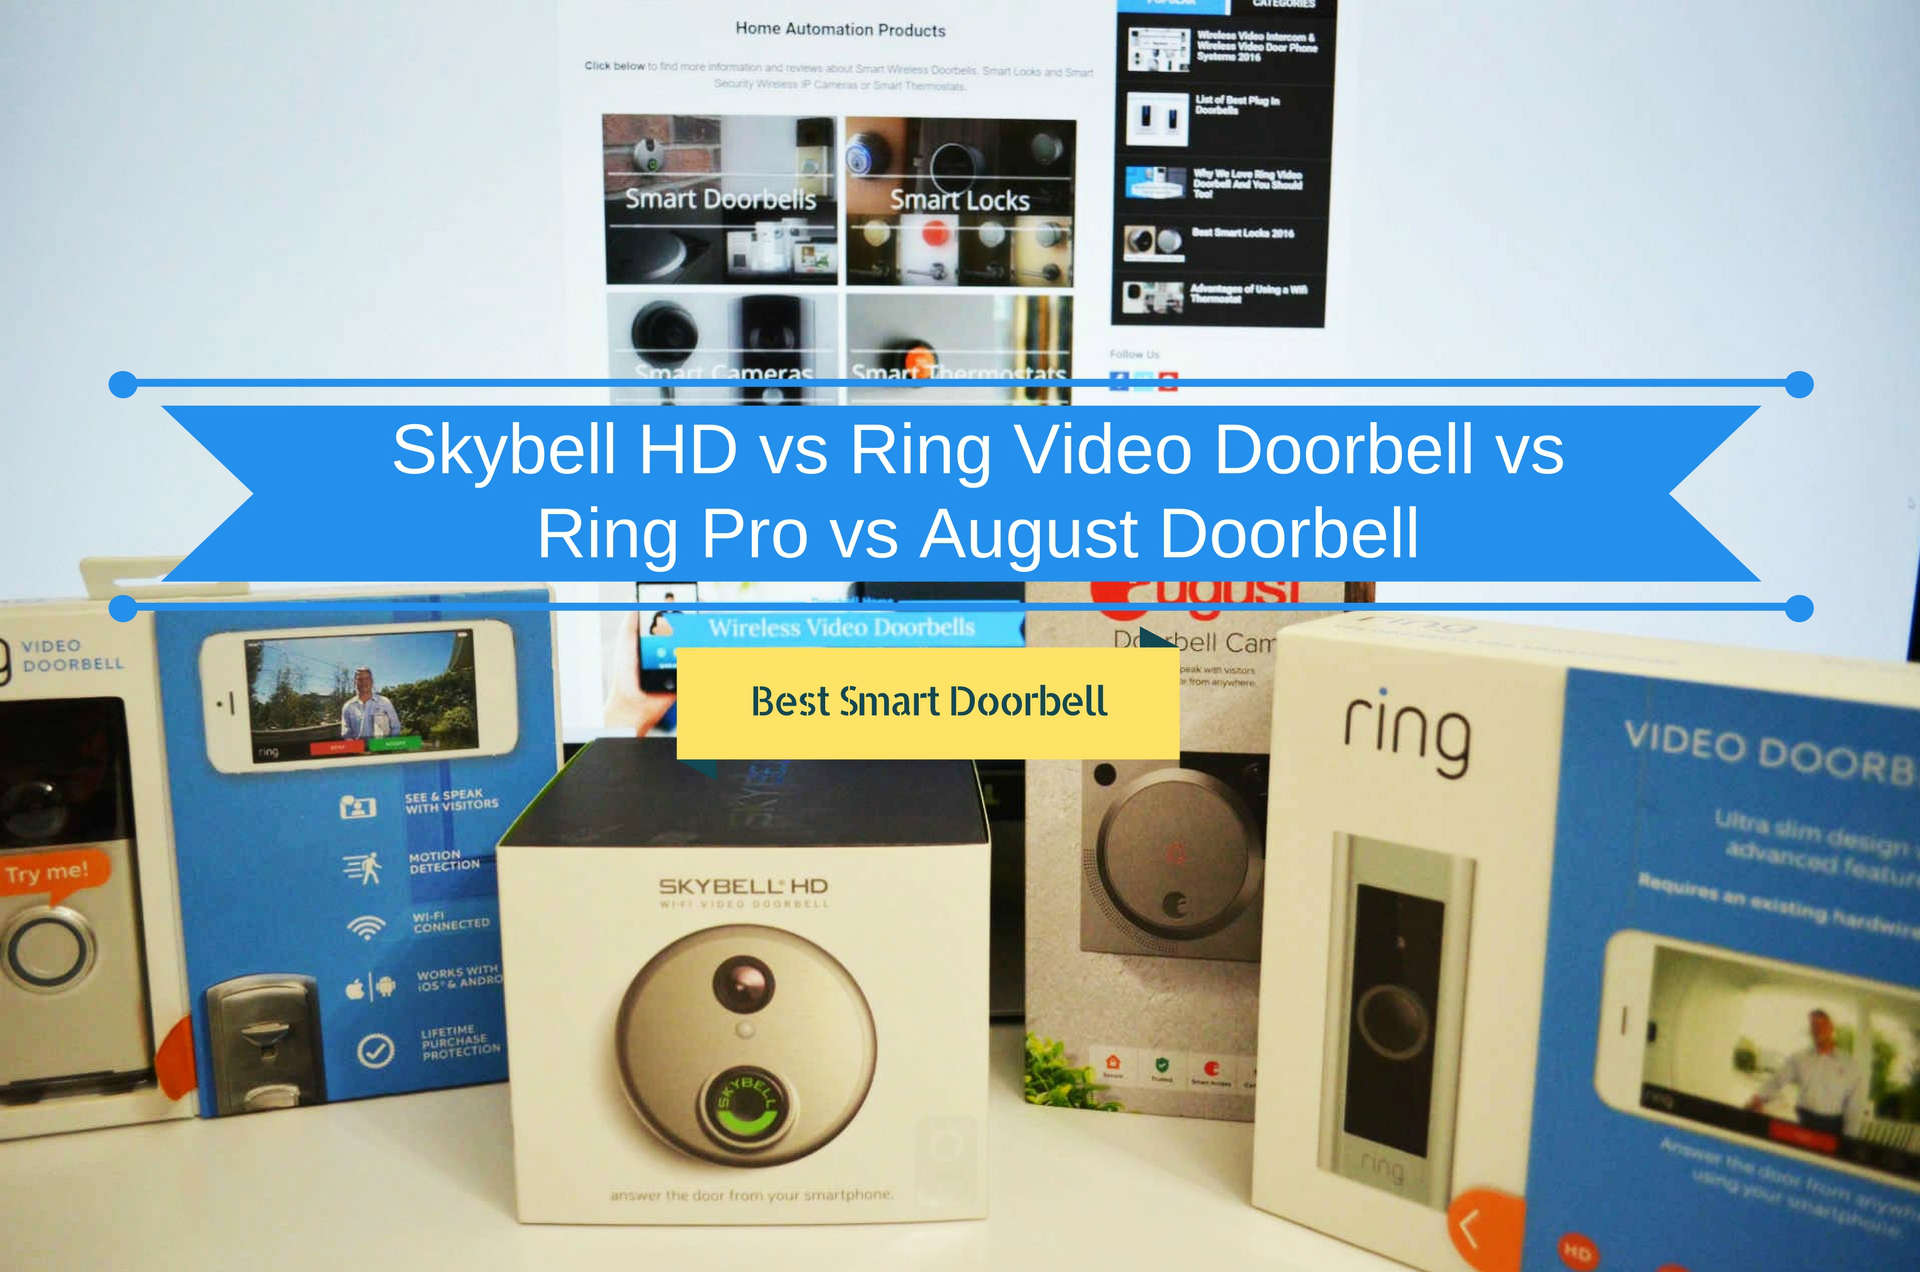 Best Video Doorbell Reviews Skybell Hd Vs Ring Pro 2 Wiring Up Here You Find Out How The New August Compared To Each Other In Multiple Tests